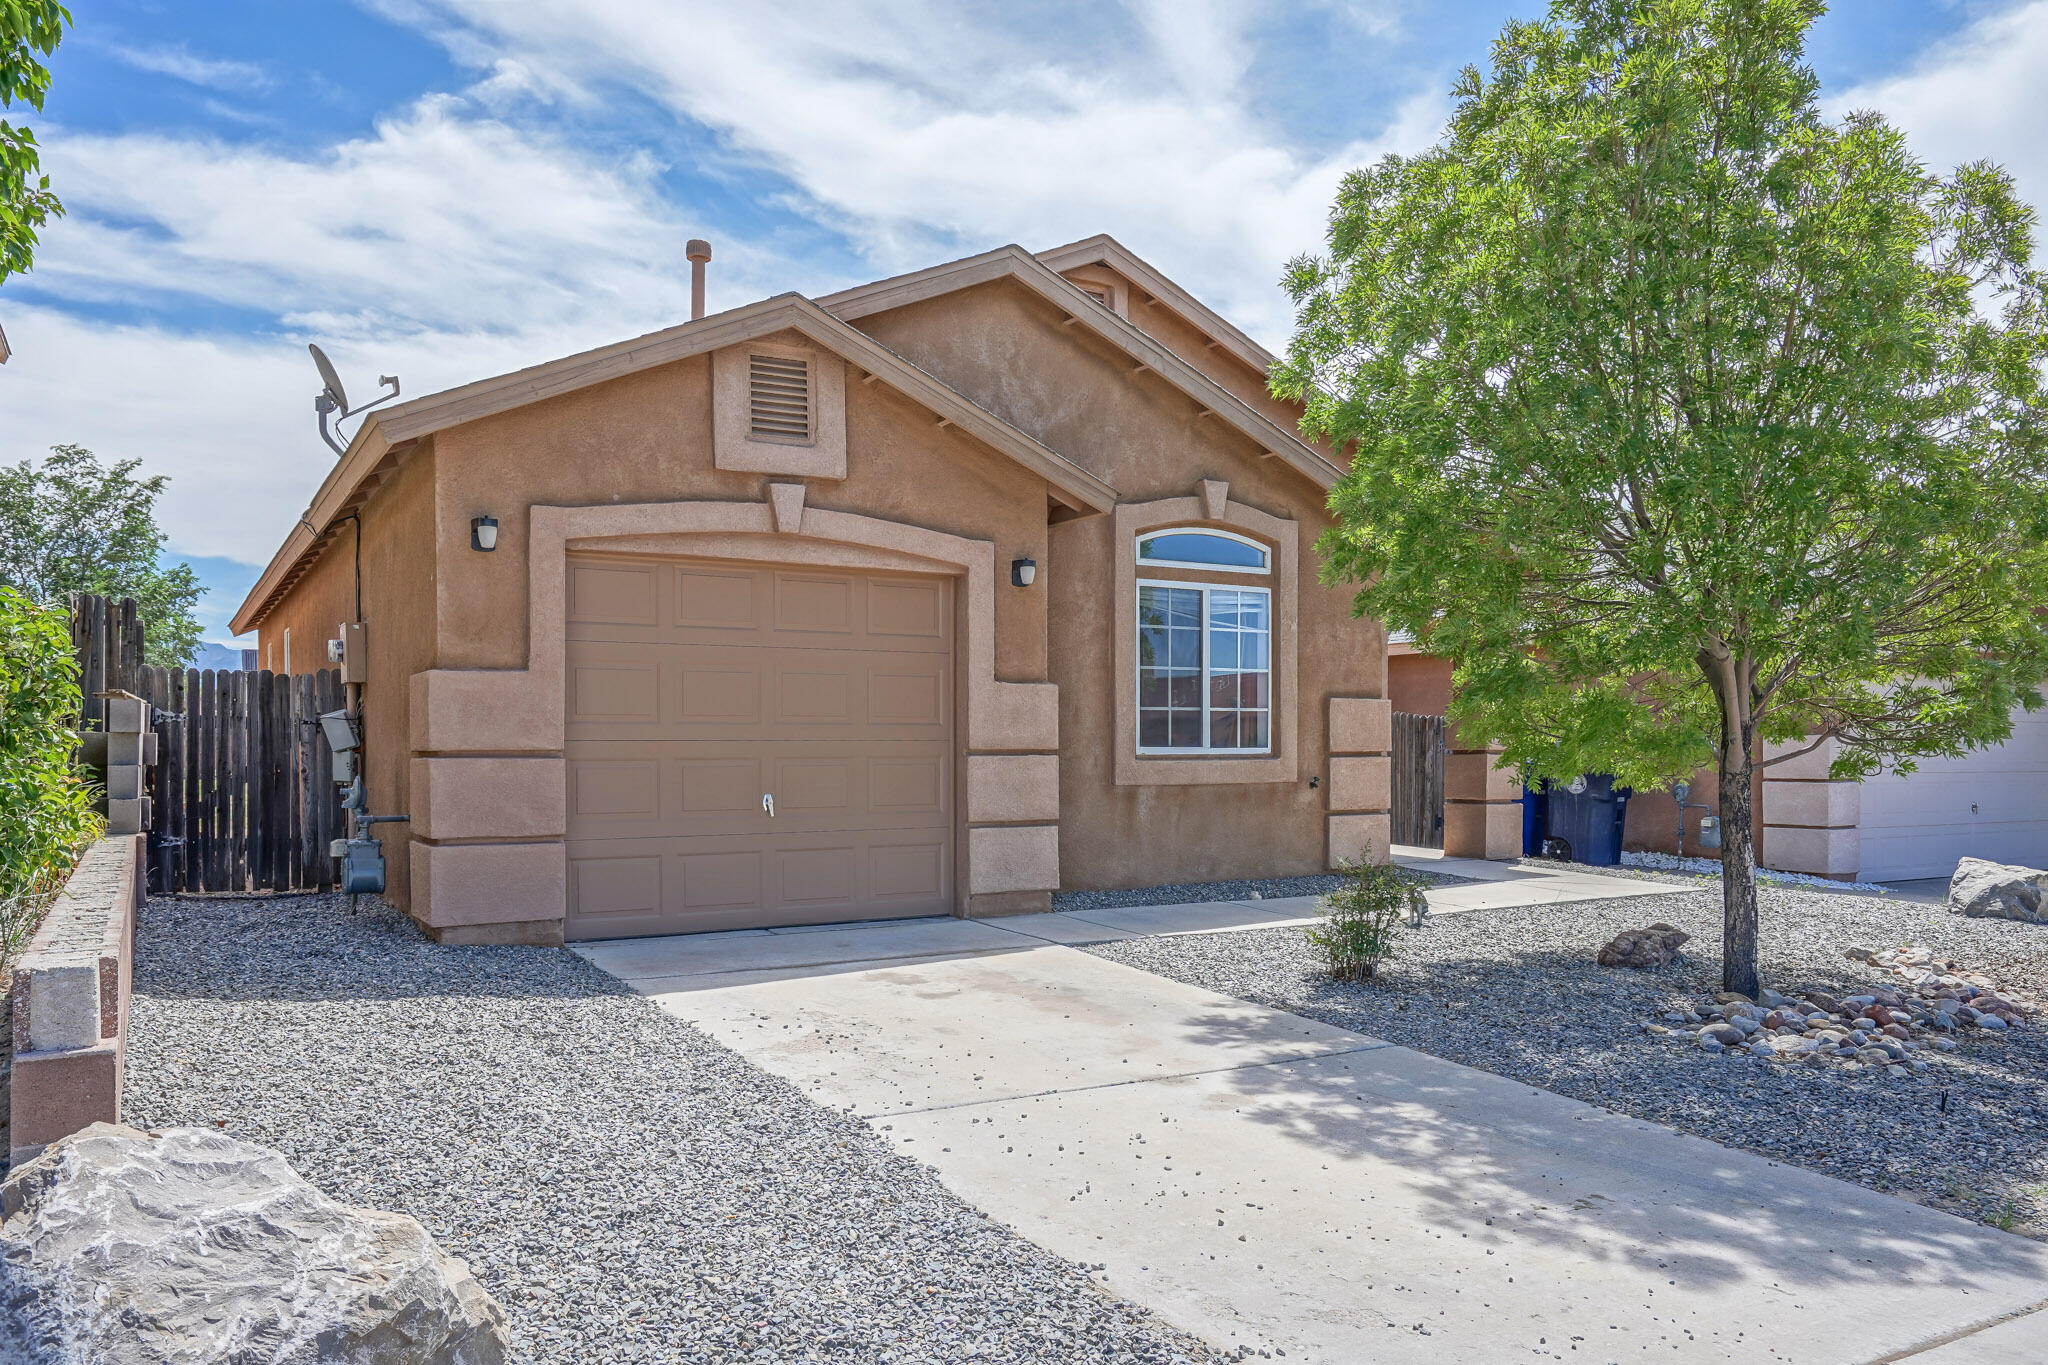 Dont miss this cute house on Albuquerque's west side! This perfect starter home features a large backyard, single car garage and two full baths! The Kitchen opens to the living room and is great for entertaining. This one won't last long!